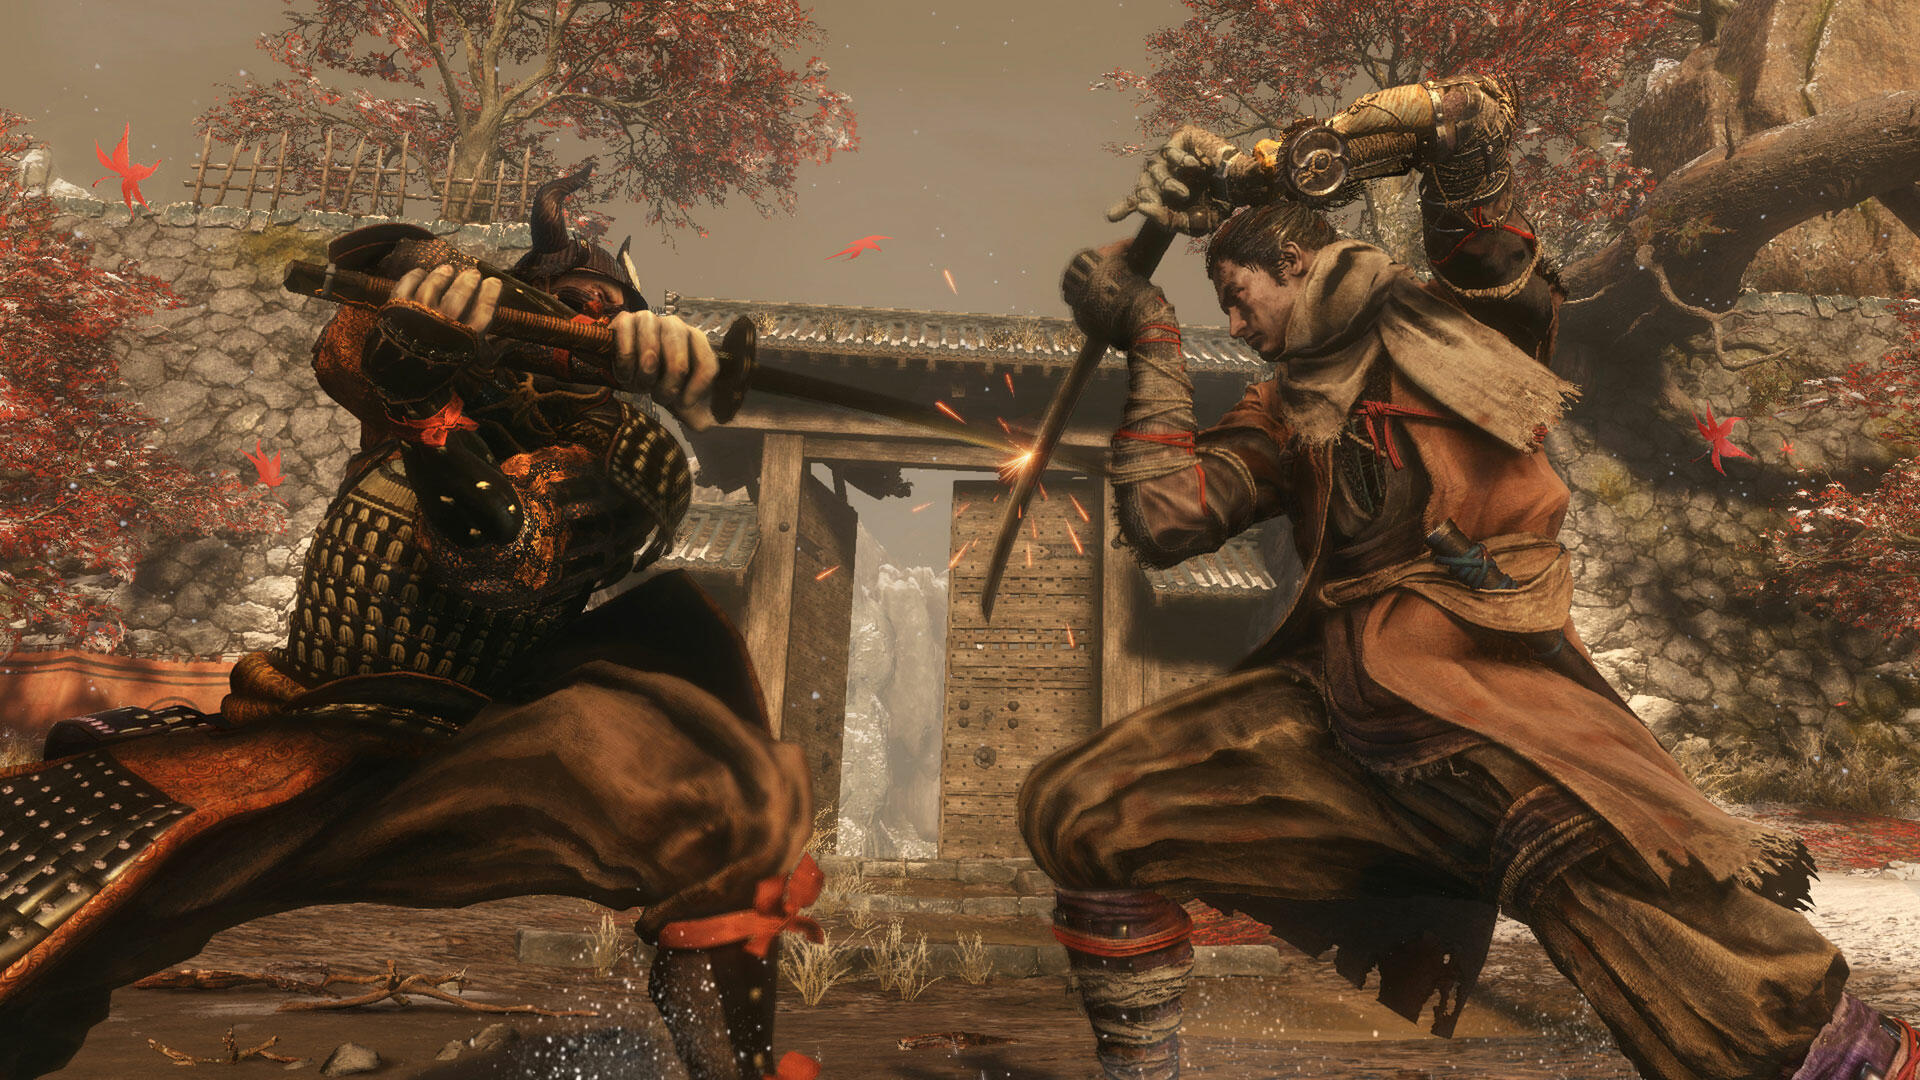 How to Beat O'Rin of the Water in Sekiro: Shadows Die Twice